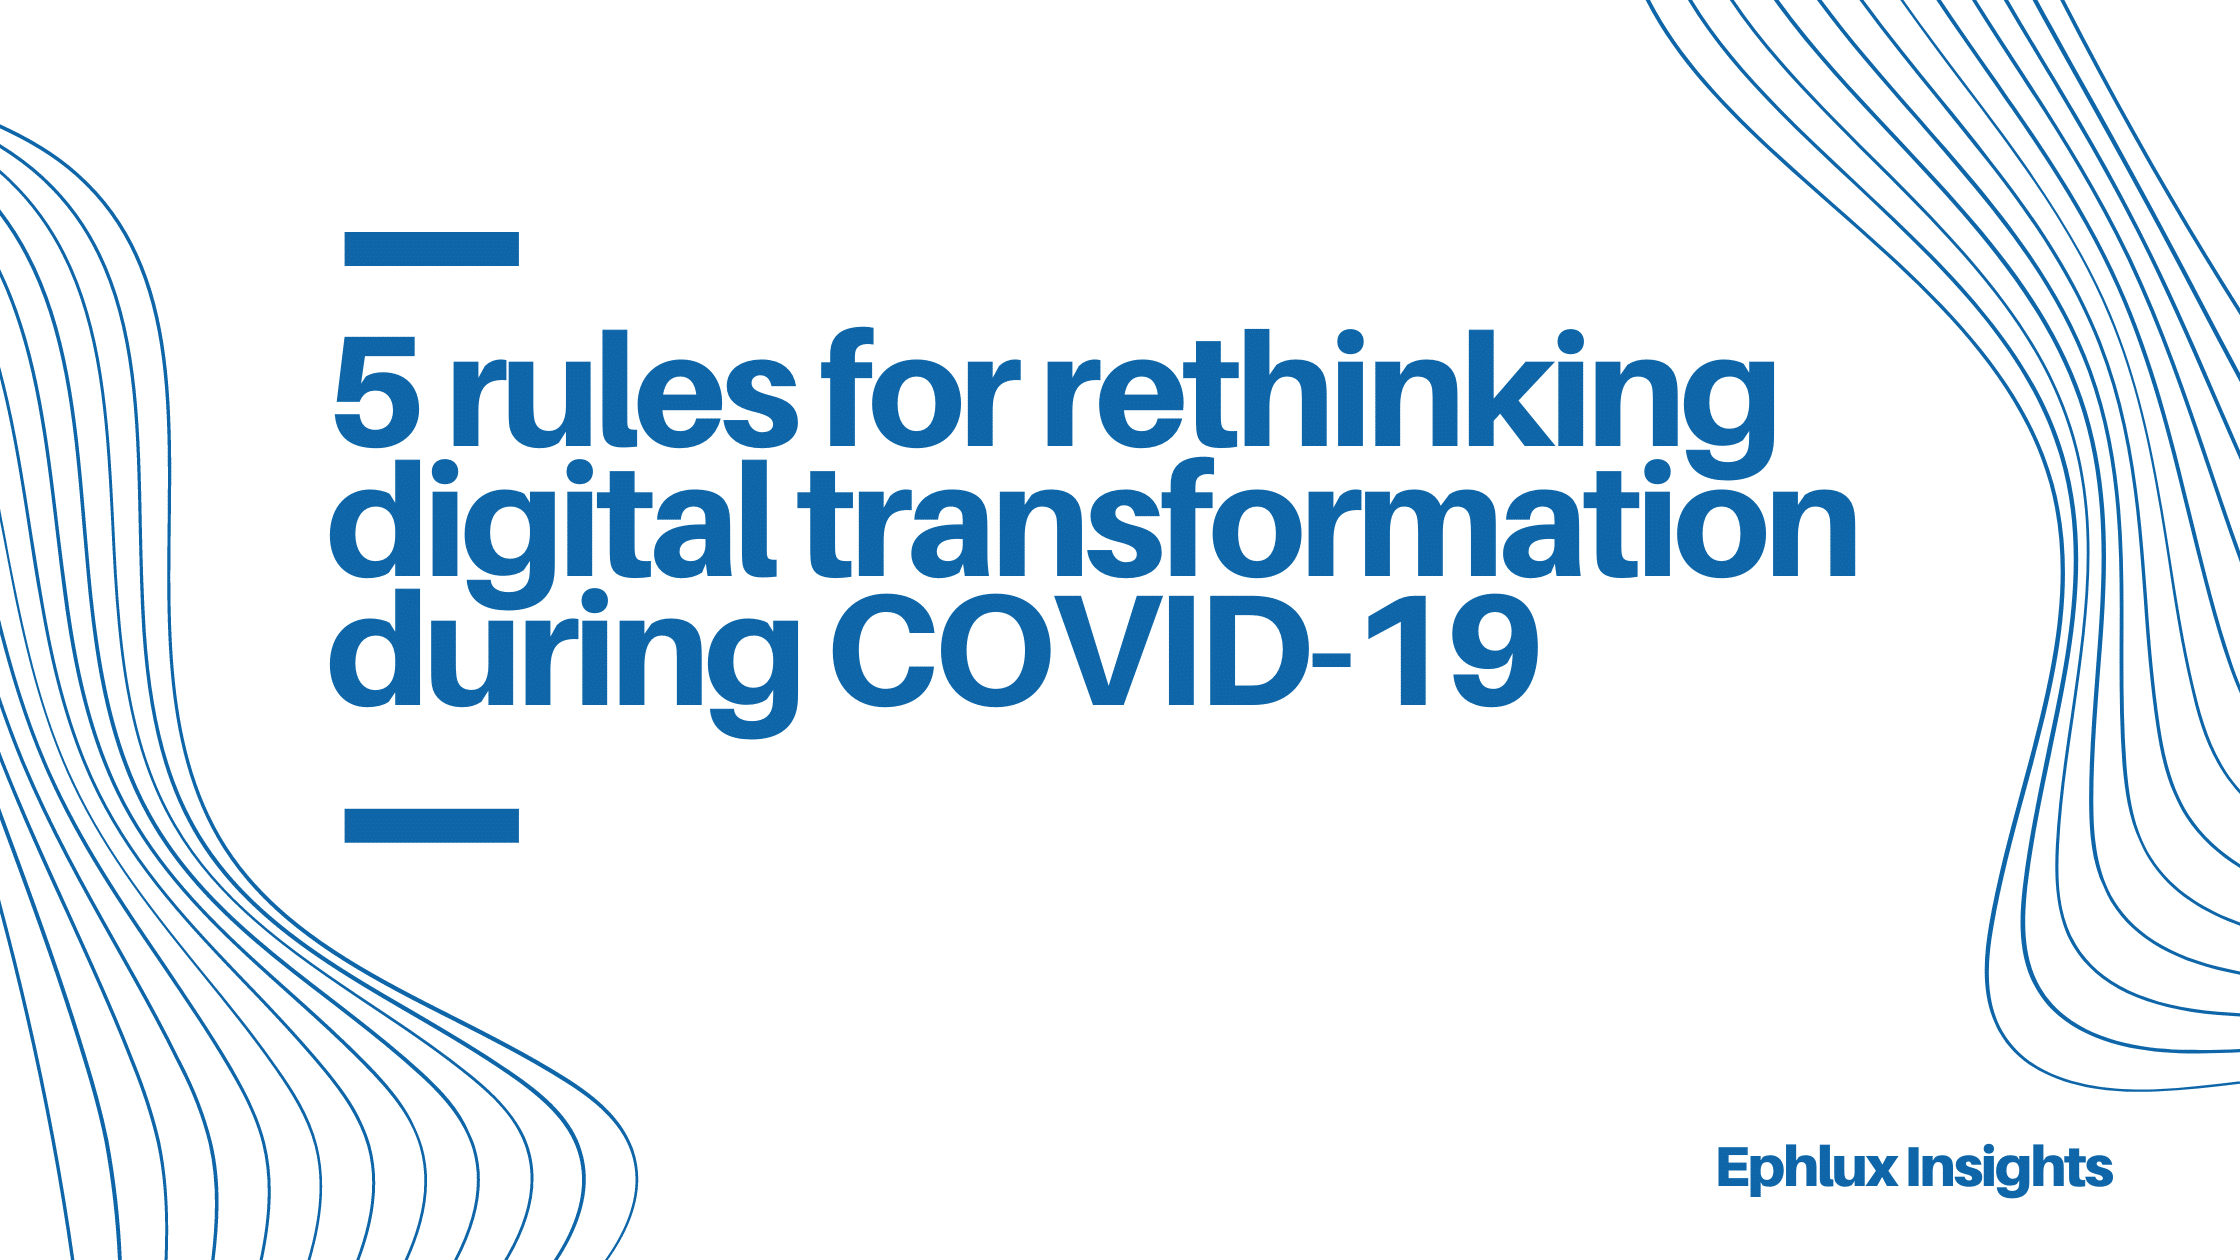 5 rules for rethinking digital transformation during COVID-19